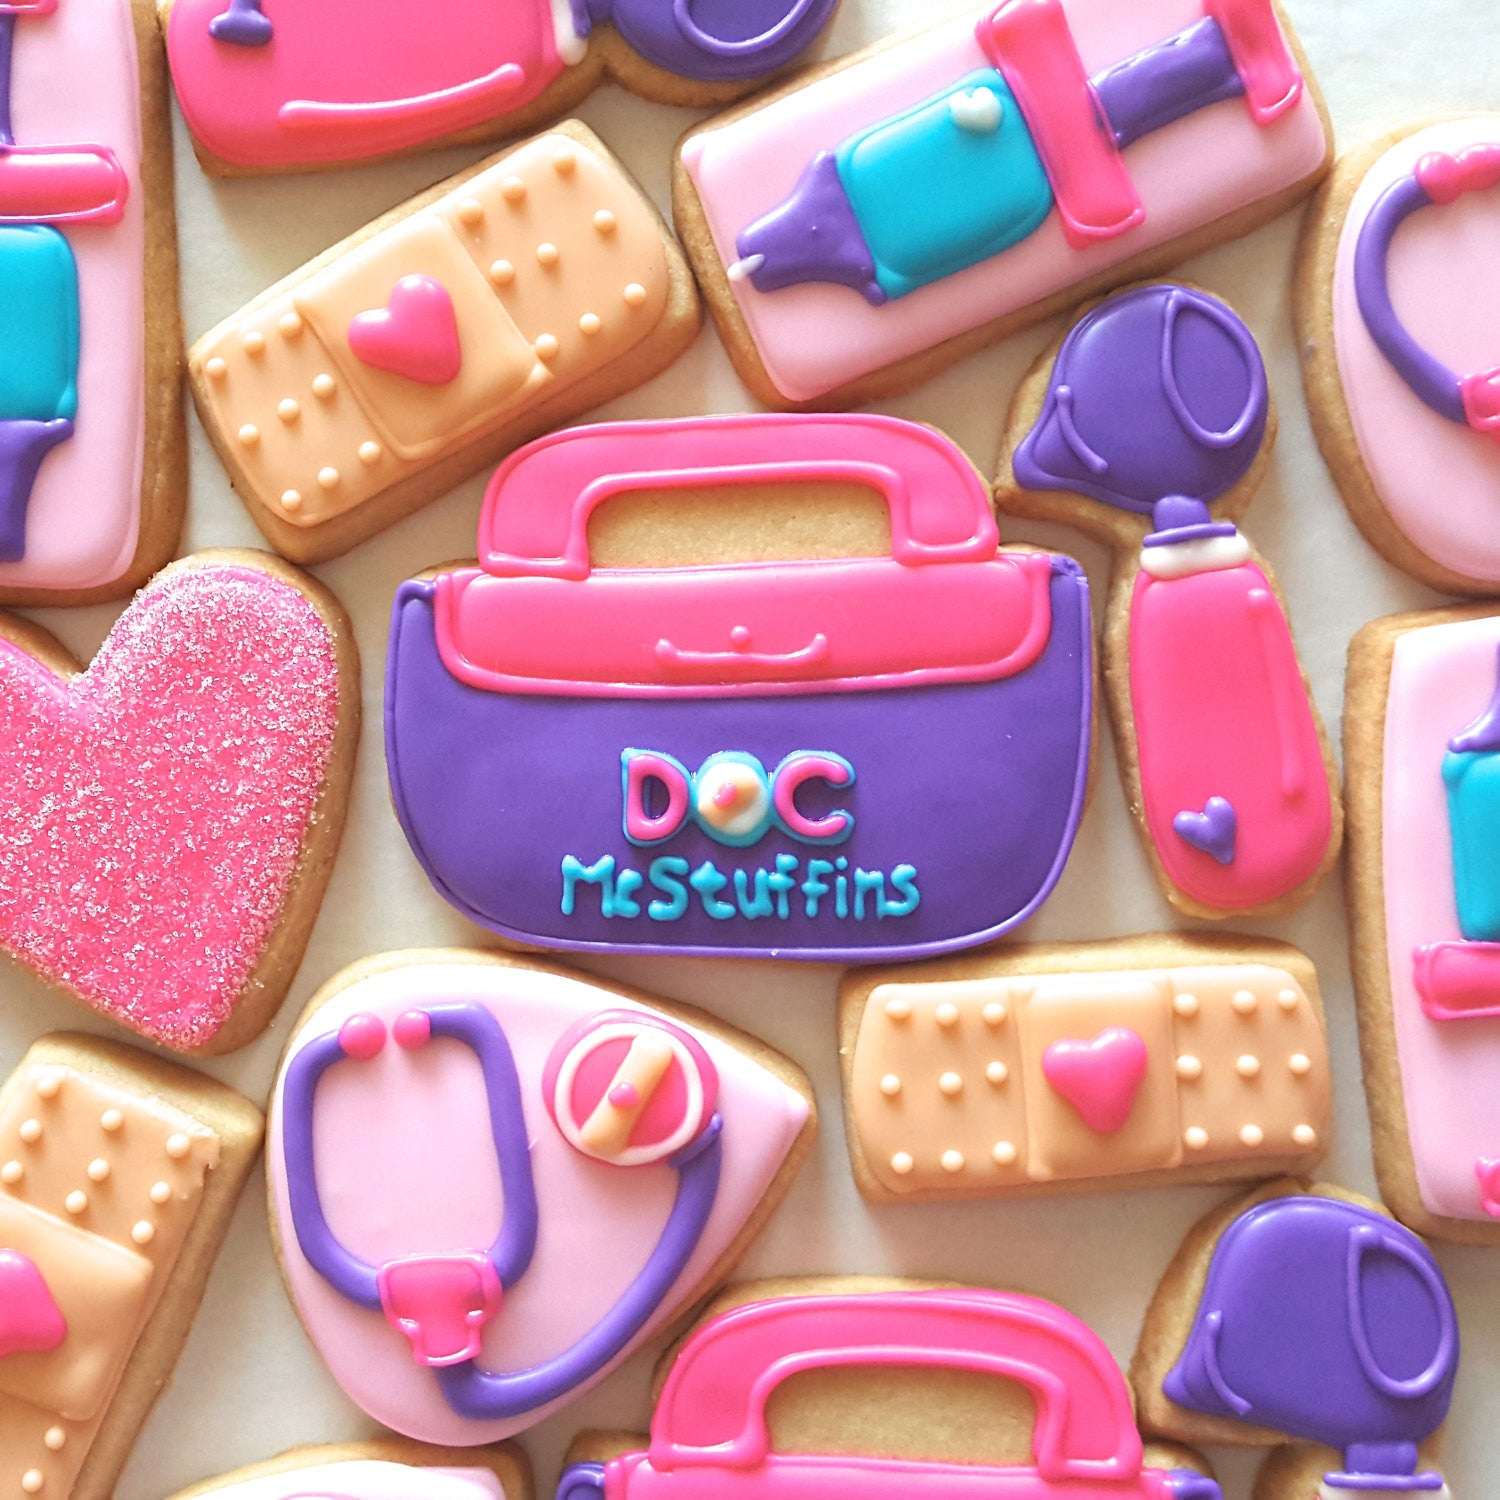 Doc McStuffins Birthday Party Cookies TheIcedSugarCookie.com Merci Bakery